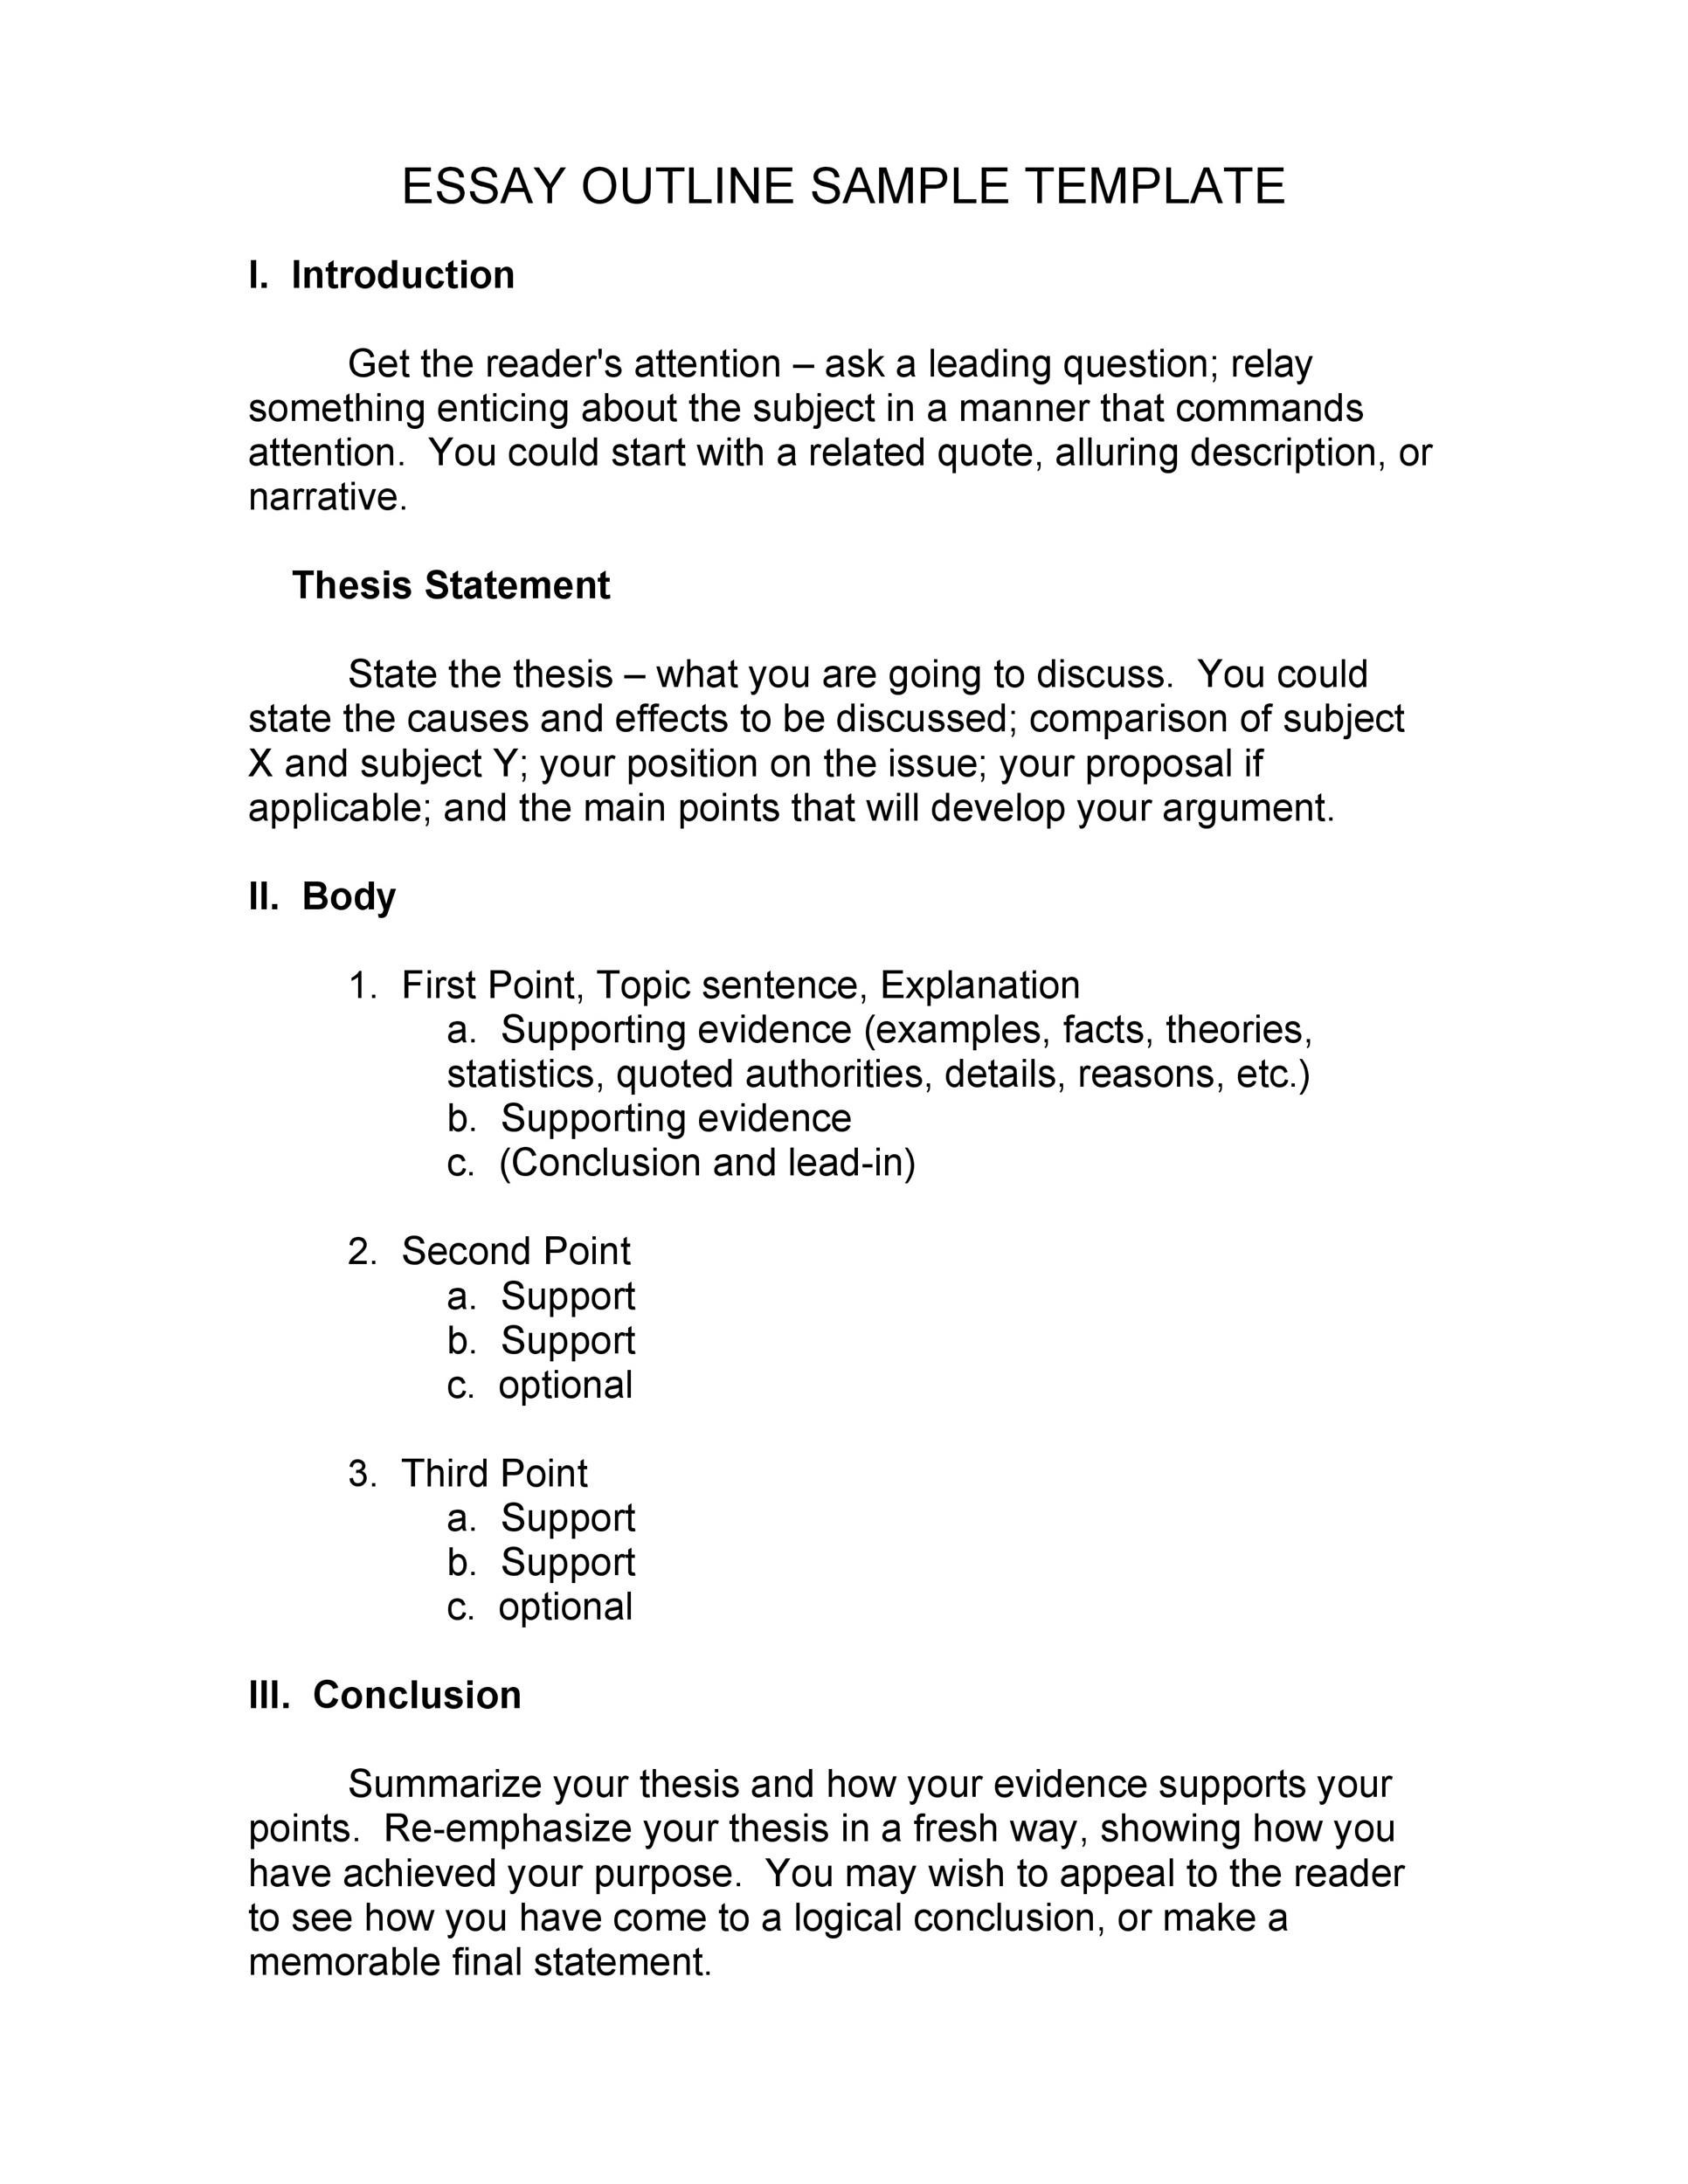 Health And Wellness Essay  Example Of English Essay also Thesis Statement Narrative Essay  Outstanding Essay Outline Templates Argumentative  Essays About Health Care